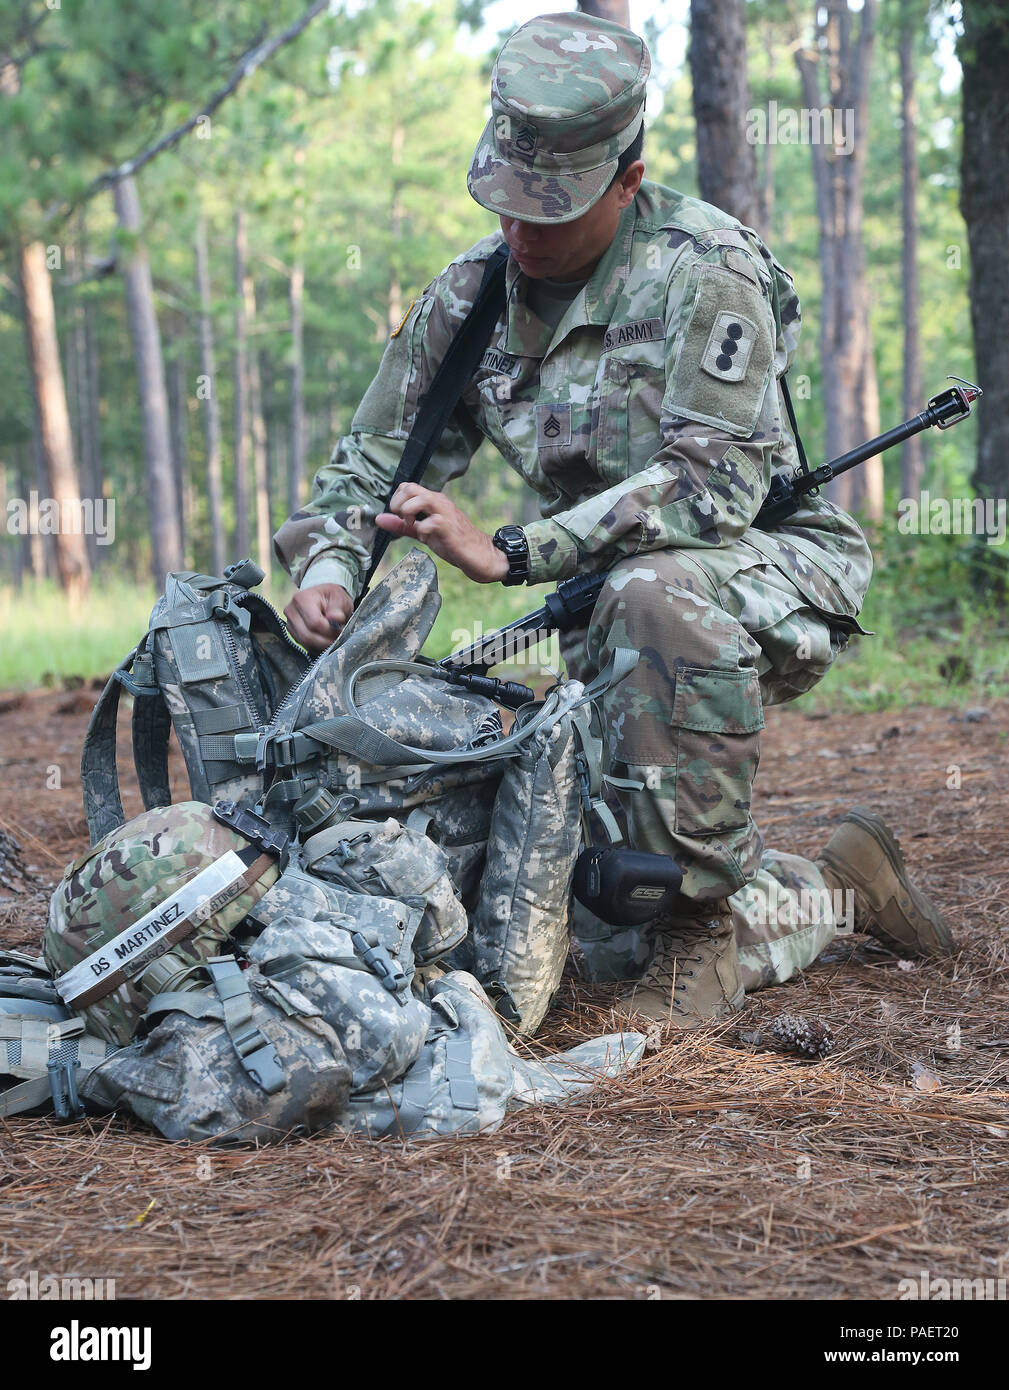 Staff Sgt. Gretchen Martinez from the Fires Center of Excellence gets her equipement ready to go through the react to direct/indirect fire lanes during the TRADOC Best Warrior Competition, Fort Gordon, Georgia, July 18, 2018. The Best Warrior Competition recognizes TRADOC NCOs and Soldiers who demonstrate commitment to the Army Values, embody the Warrior Ethos, and represent the force of the future by testing them with physical fitness assessments, written exams, urban warfare simulations, and other warrior tasks and battle drills. (U.S. Army photo by Pfc. Caeli Morris) Stock Photo